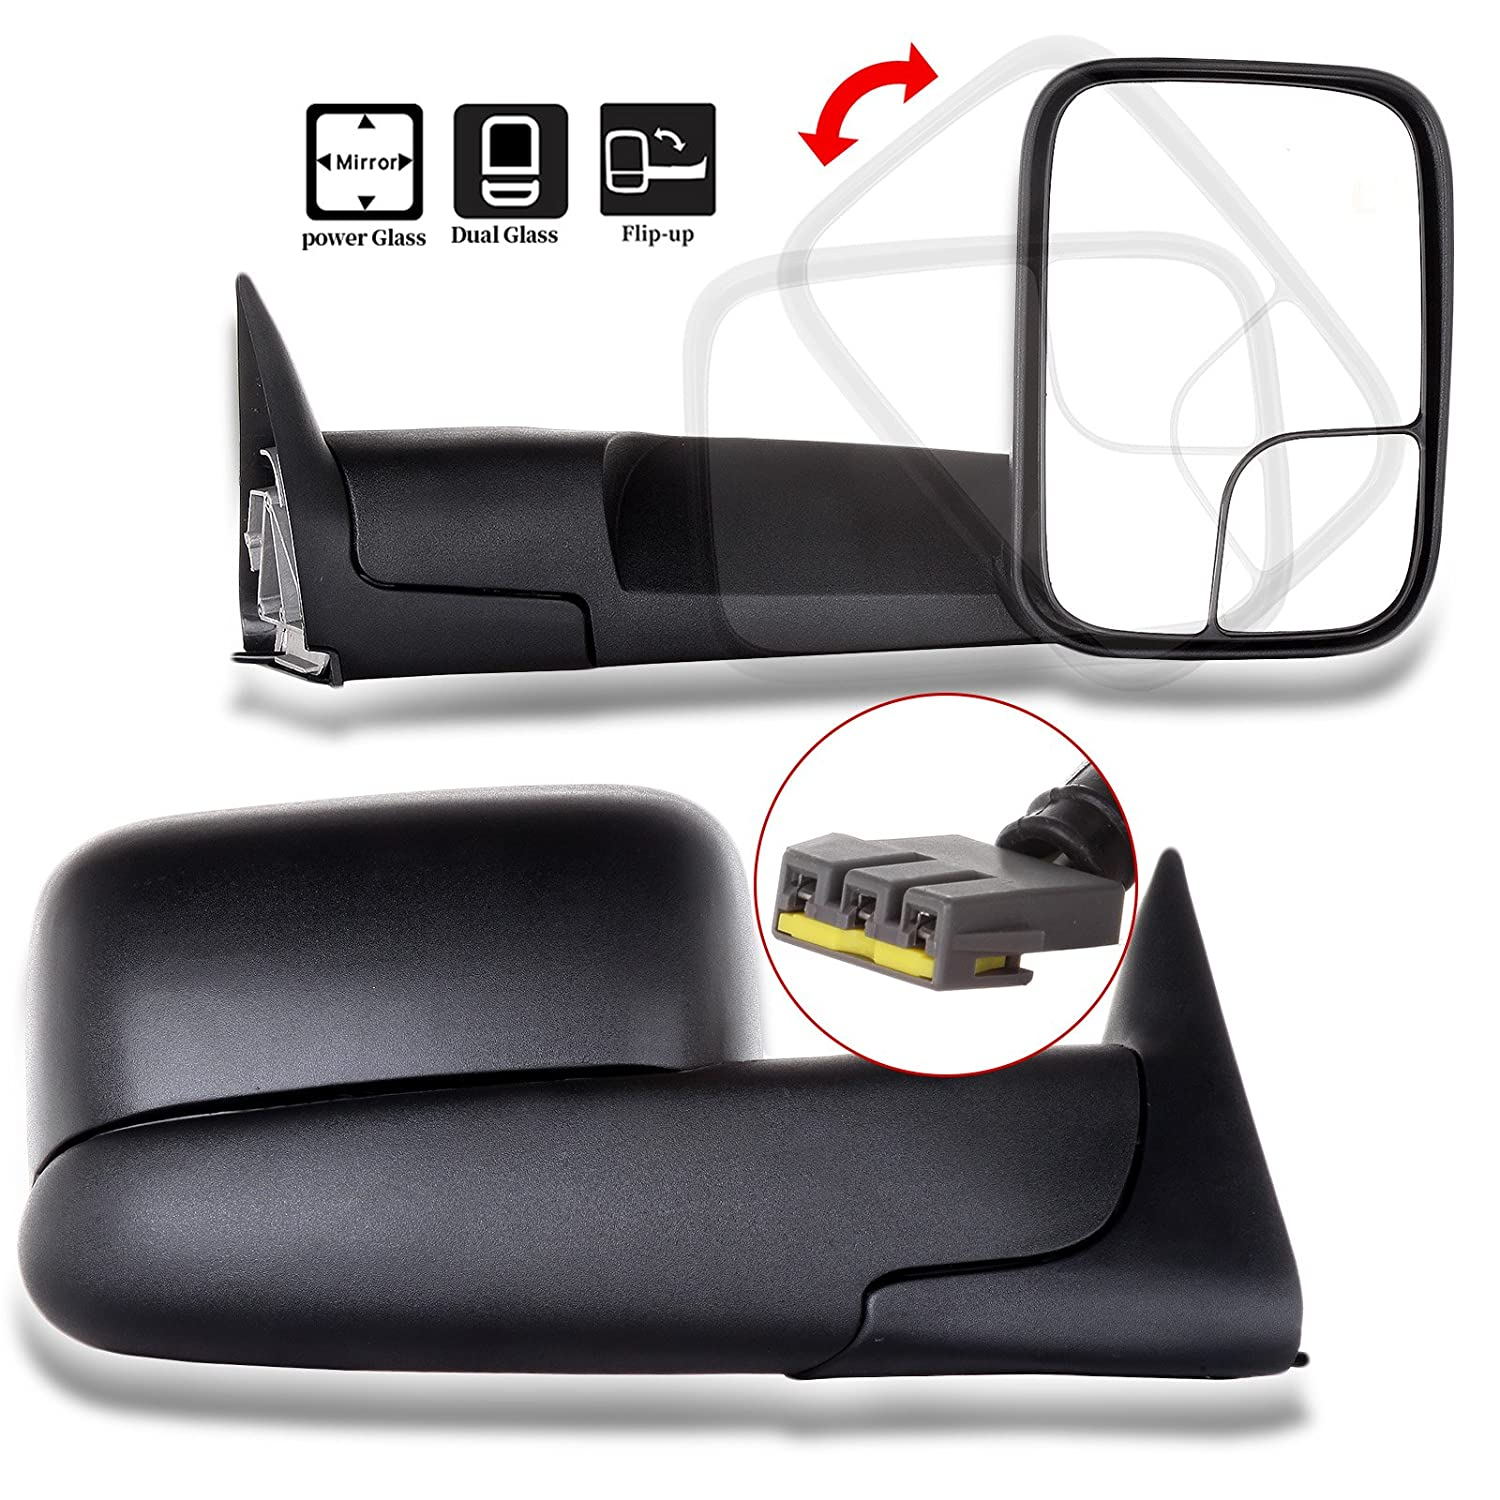 SCITOO Towing Mirrors fit 1994-2002 Ram 2500 3500 w//Support Brackets 1994-2001 Dodge Ram 1500 Manual Black Side View Pair Mirrors 050987-5206-1022404